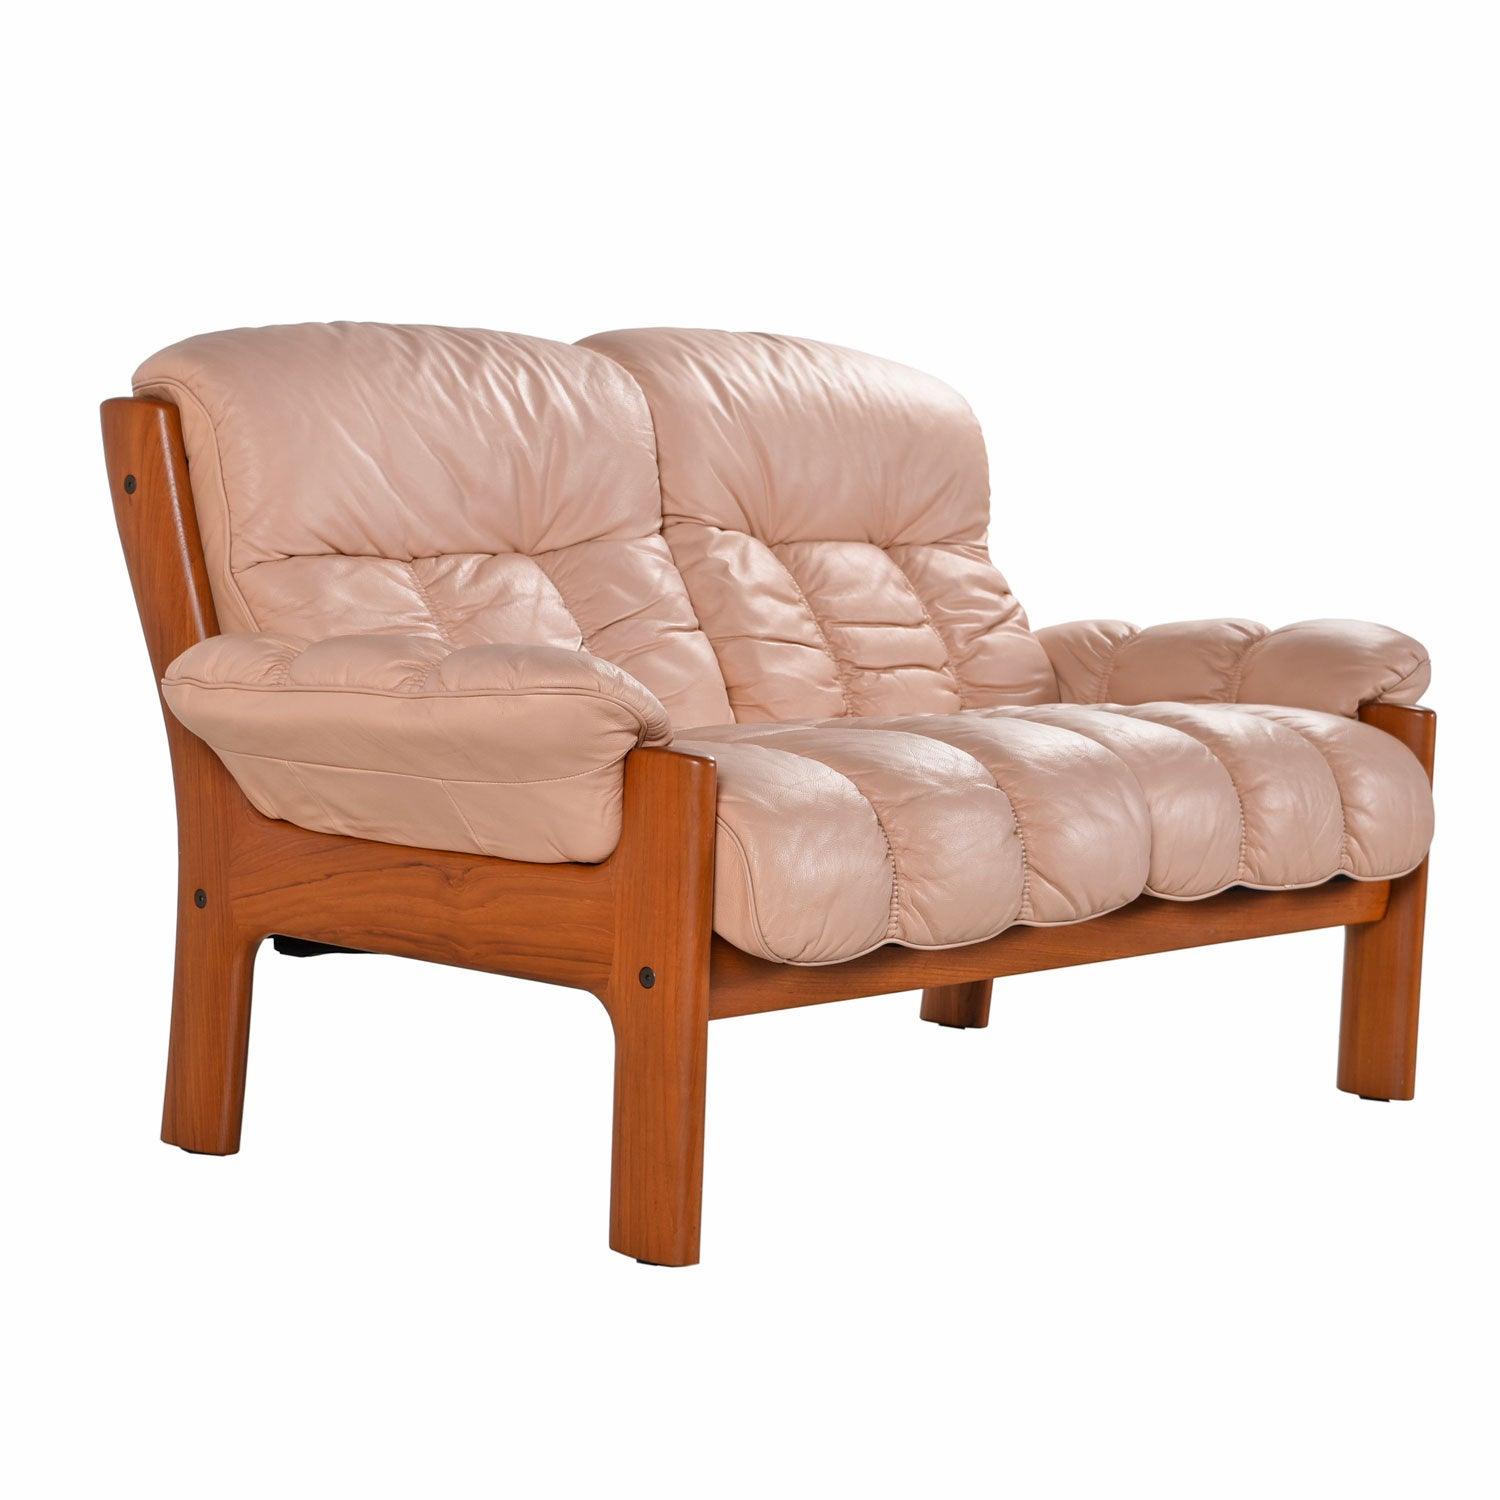 Stressless Sofa Dealers Ekornes Stressless Montana Solid Teak Loveseat Sofa In Pale Rose Leather